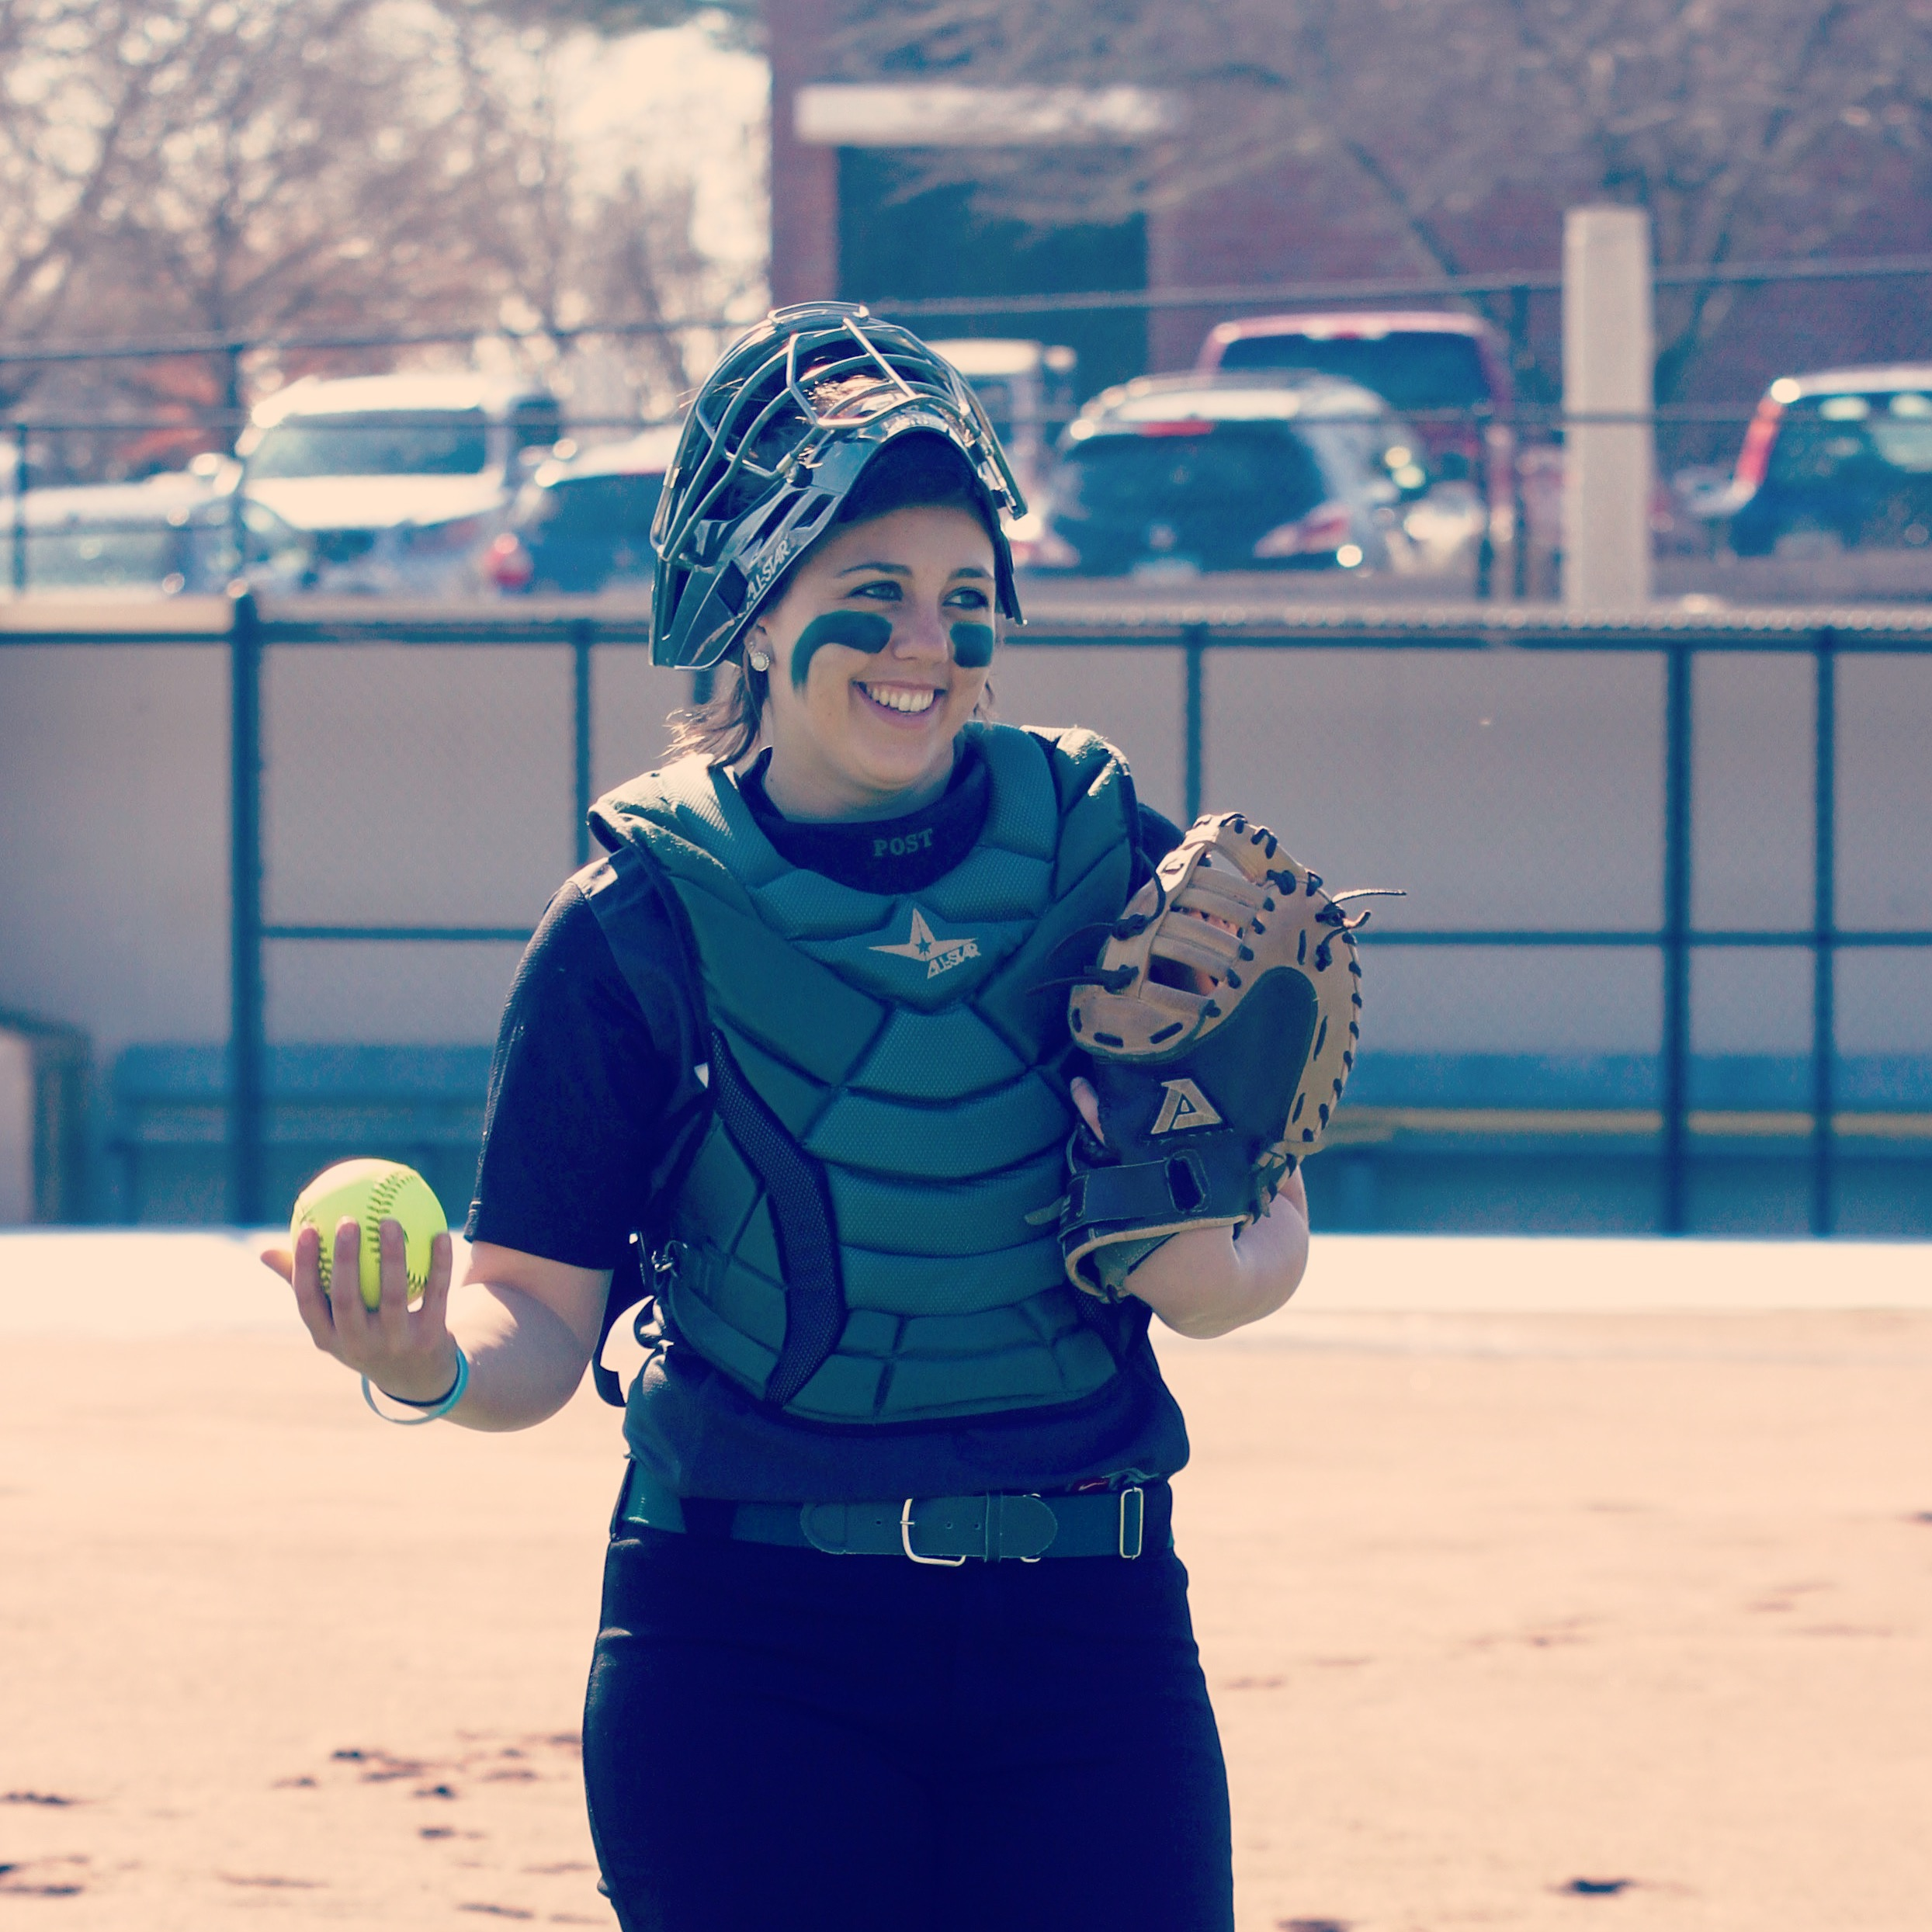 Kate Dawson - Founder/ Recruiting SpecialistKate played Division II college softball at Post University on scholarship. She was a 3 year started and was team captain her senior year. After graduating in 2017 she became the Director of Softball at Seacoast United Sports Club in New Hampshire. During her time here she specialized in the recruiting process, sparking her love for the process and helping young athletes achieve their dreams of college athletics.Kate was the first in her family to go through the college recruiting process. Through trial and error she and her family we able to navigate their way to a NCAA Division II Scholarship. Kate's experience as well as helping her younger brother with his recruiting process made her realize many people went through the same troubles she and her family did. Kate wanted to create a service that would eliminate the trial and error for as many families as possible. Thus, leading her to the creation of RecruitMe Athletics.